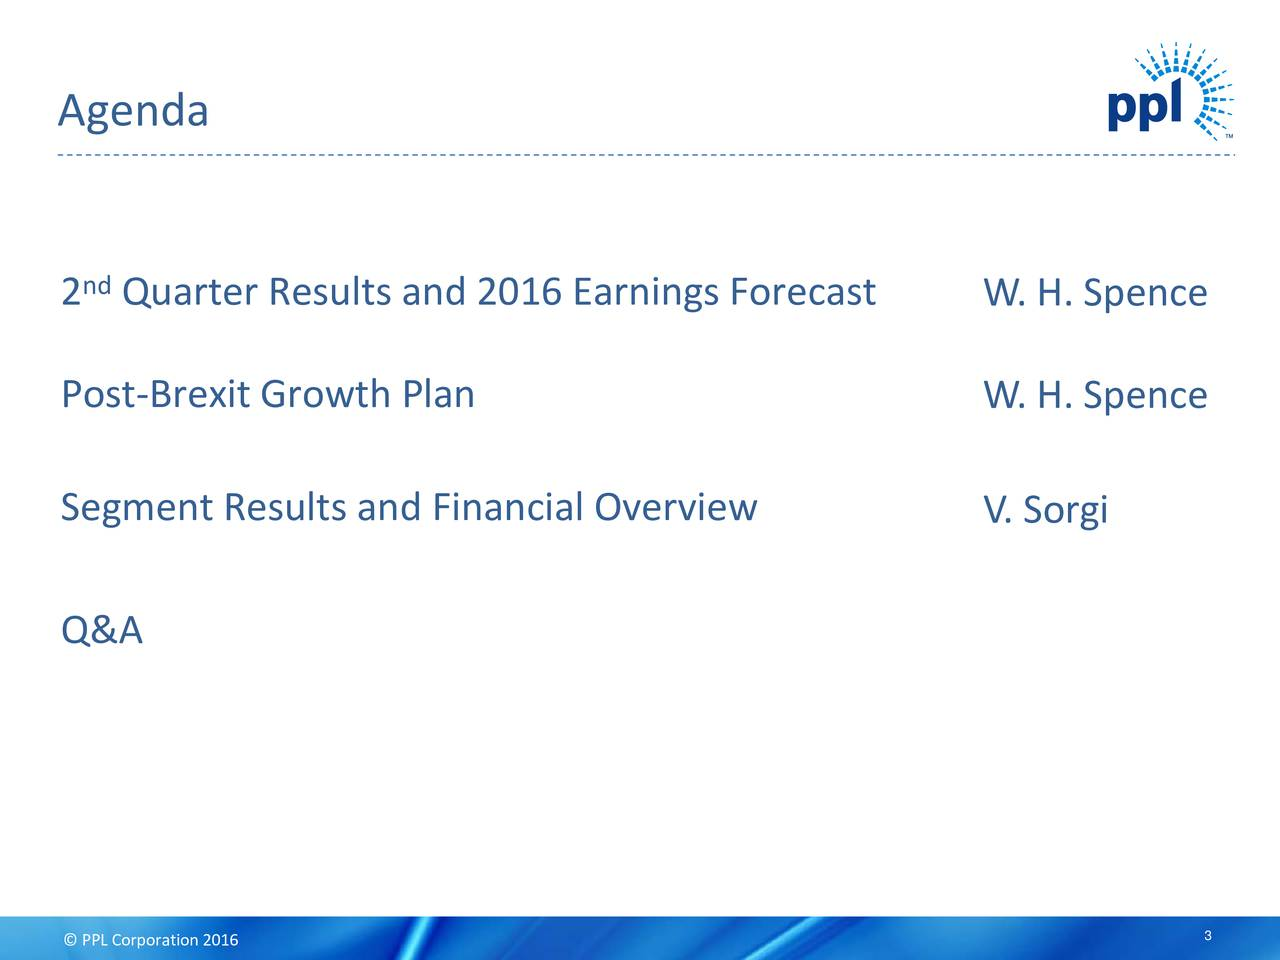 2 Quarter Results and 2016 Earnings Forecast W. H. Spence Post-Brexit Growth Plan W. H. Spence Segment Results and Financial Overview V. Sorgi Q&A 3